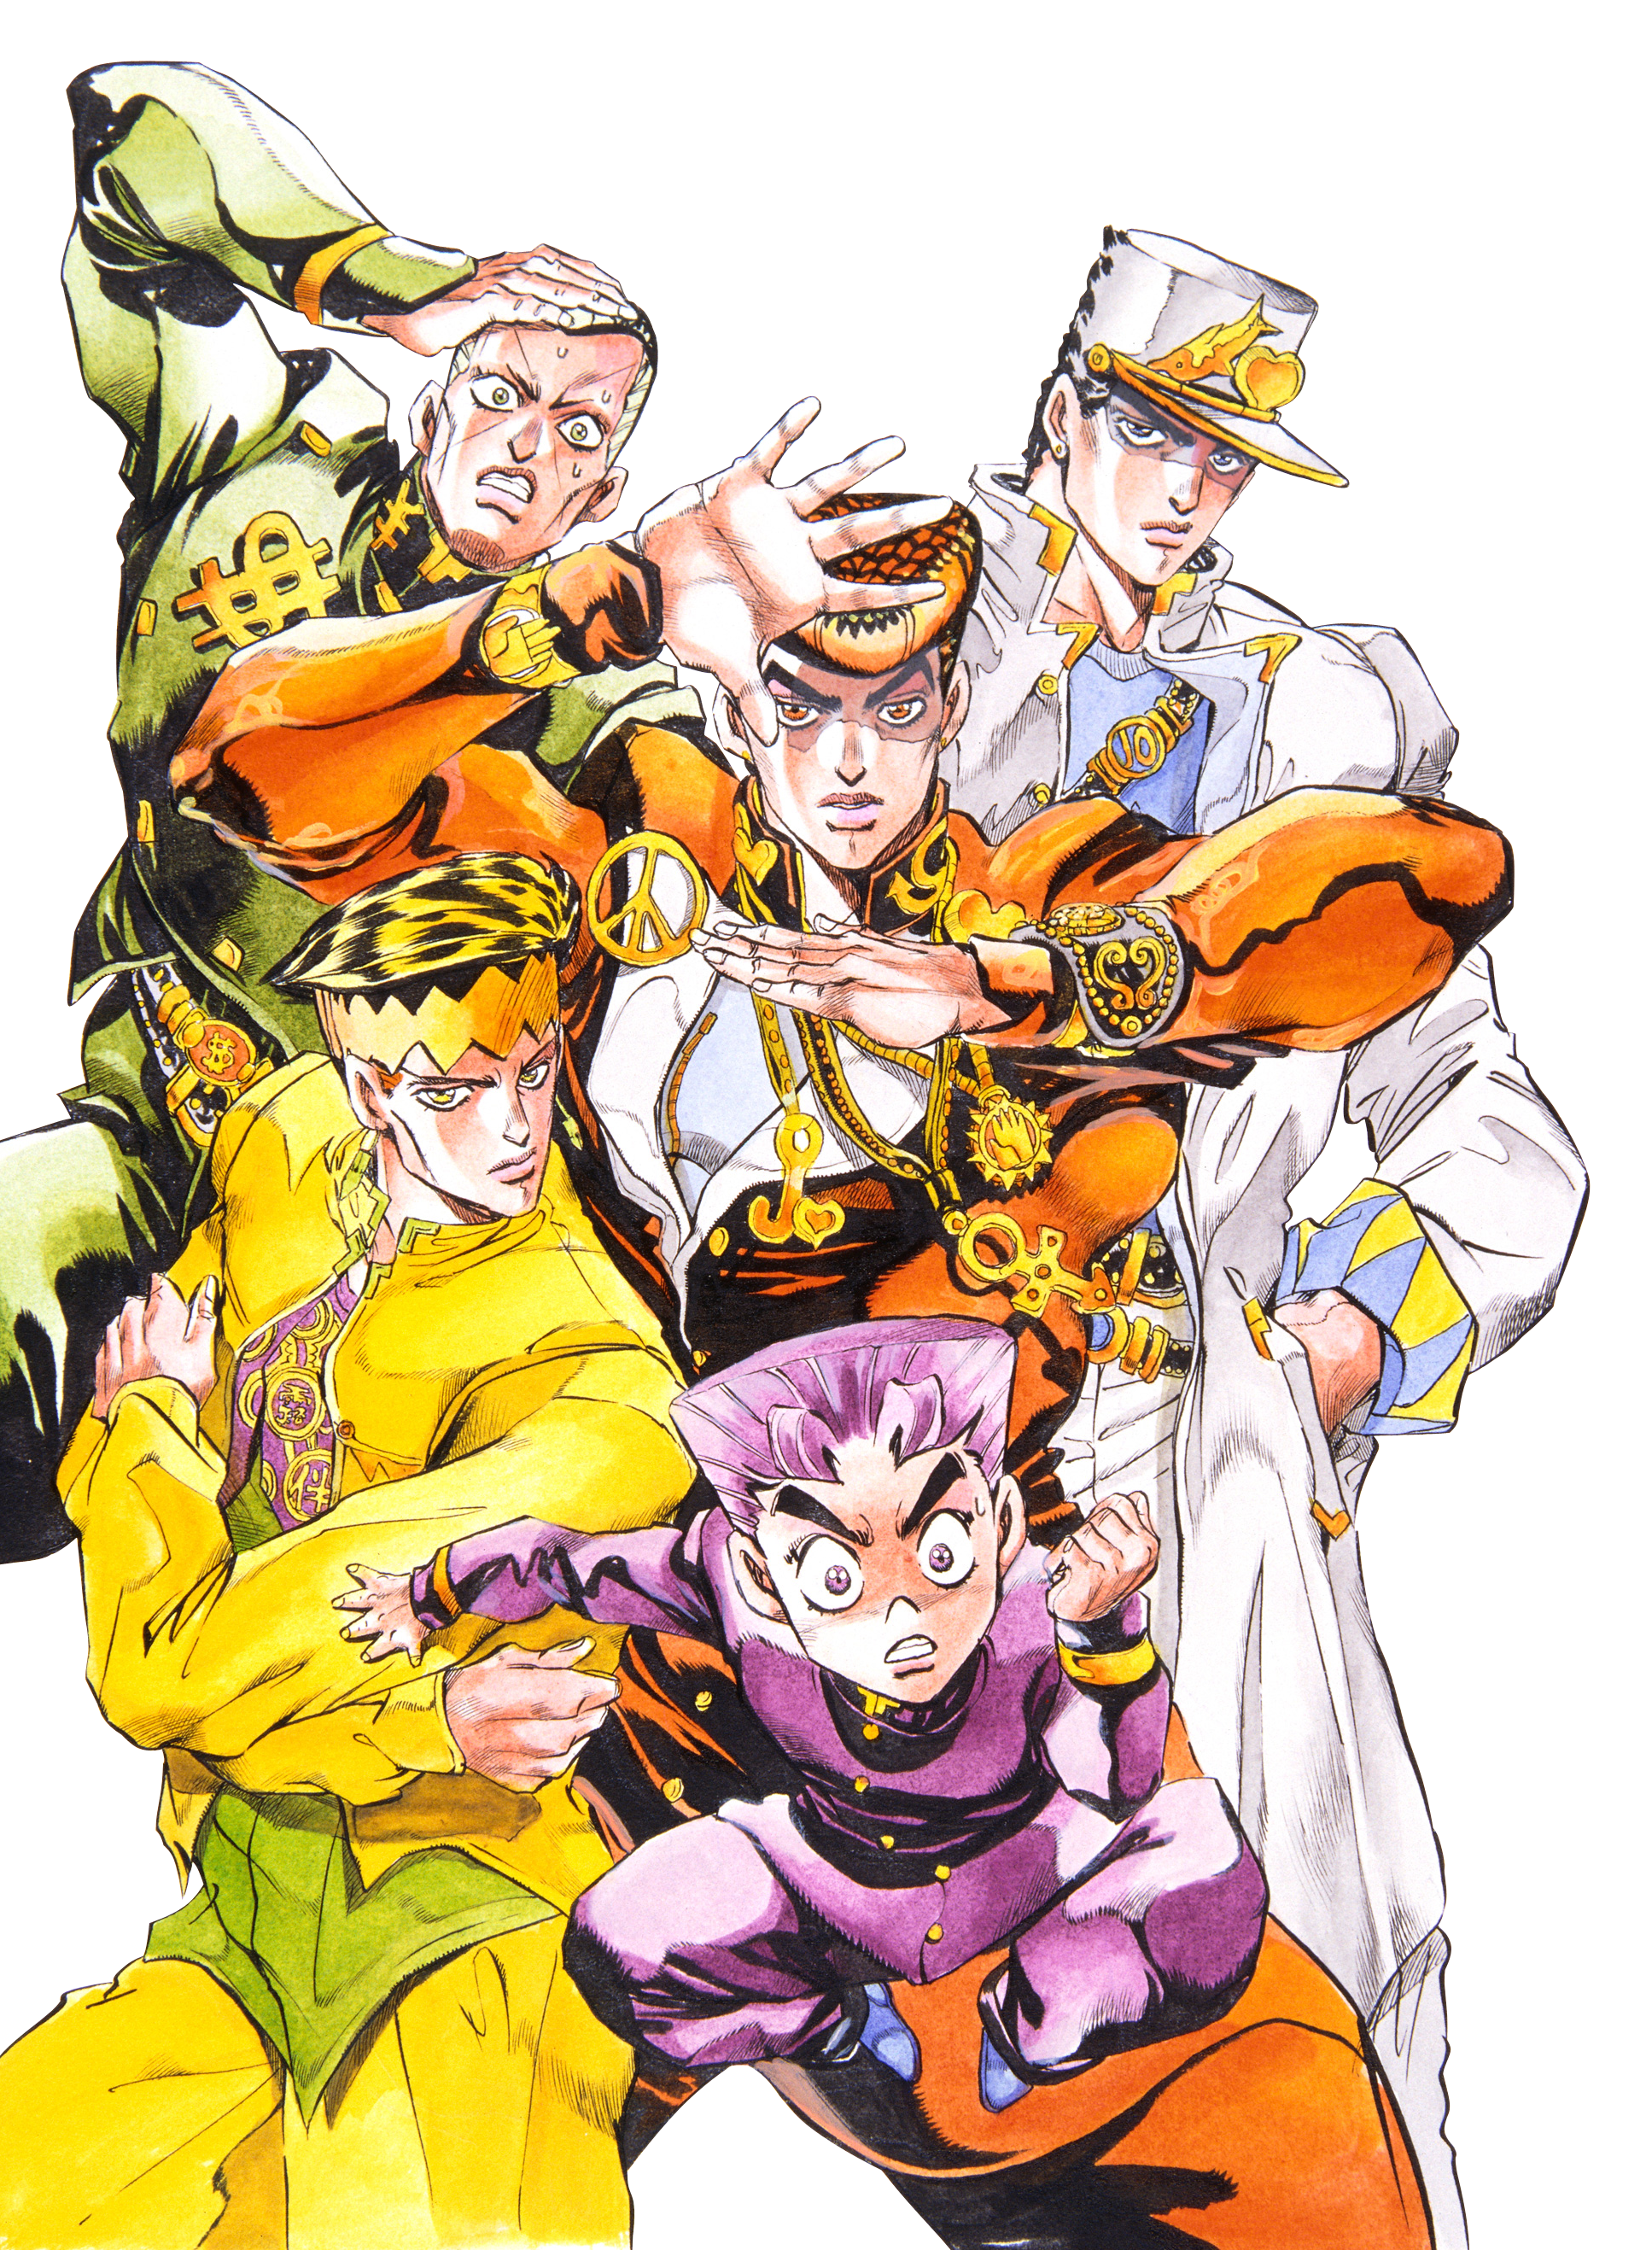 Jojo Bizarre Adventure Wallpaper Google Search Jojo Bizarre Jojo S Bizarre Adventure Anime Jojo Bizzare Adventure